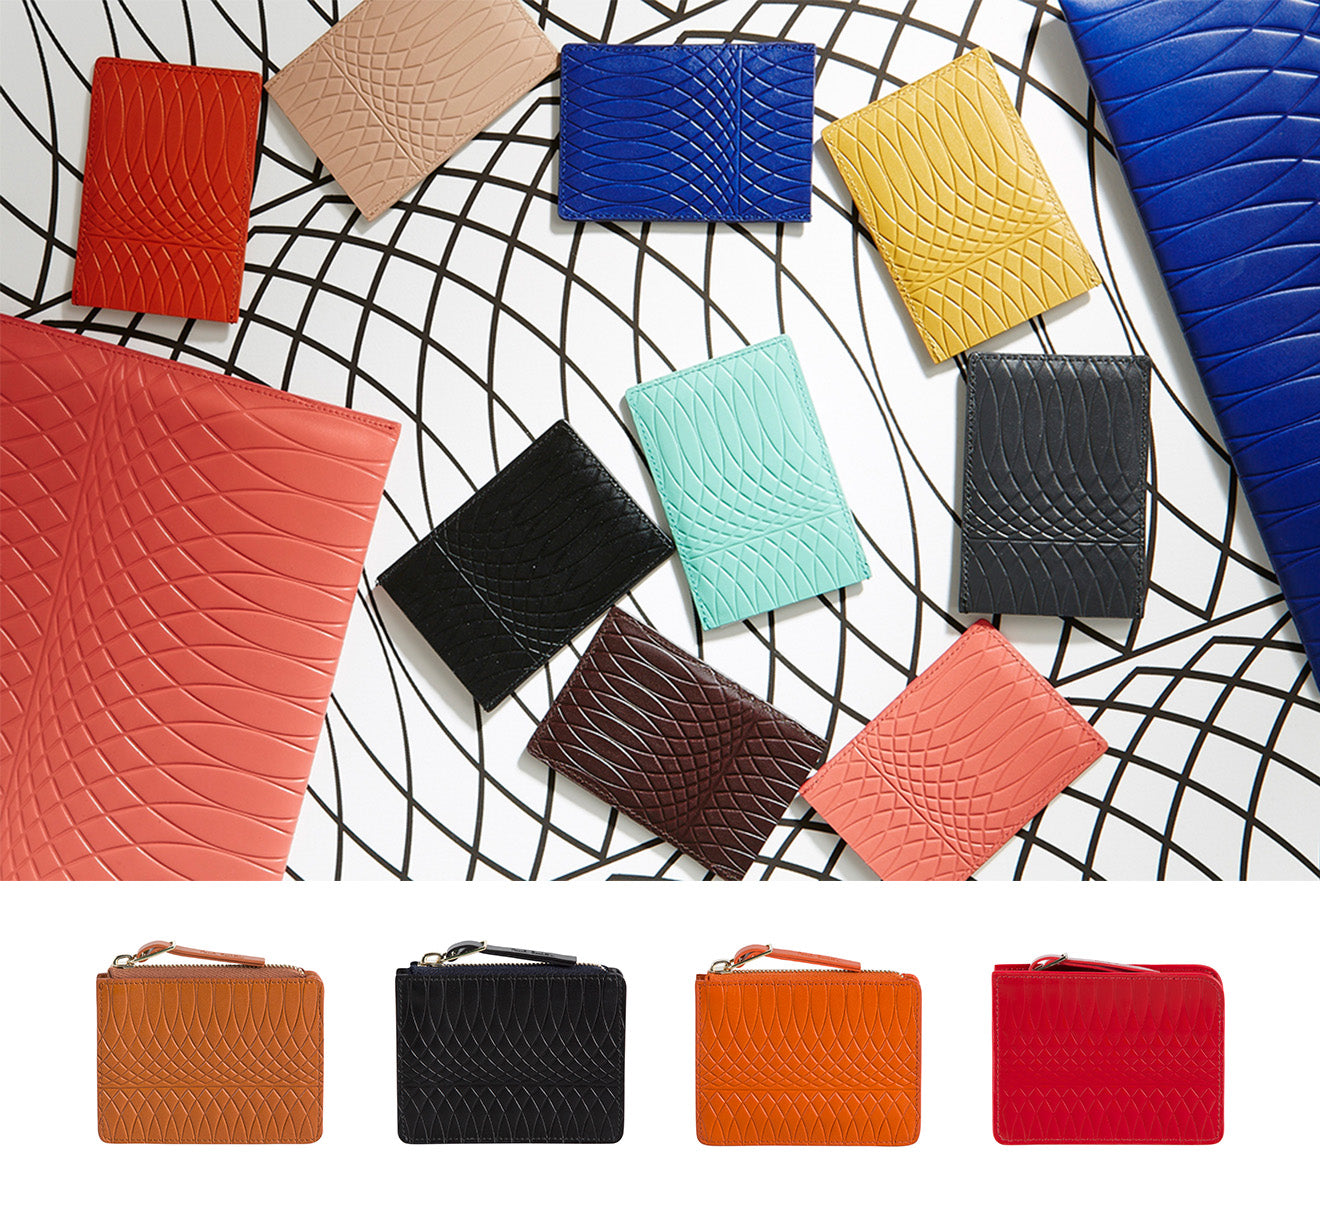 Paul Smith No 9 Collection of leather accessories